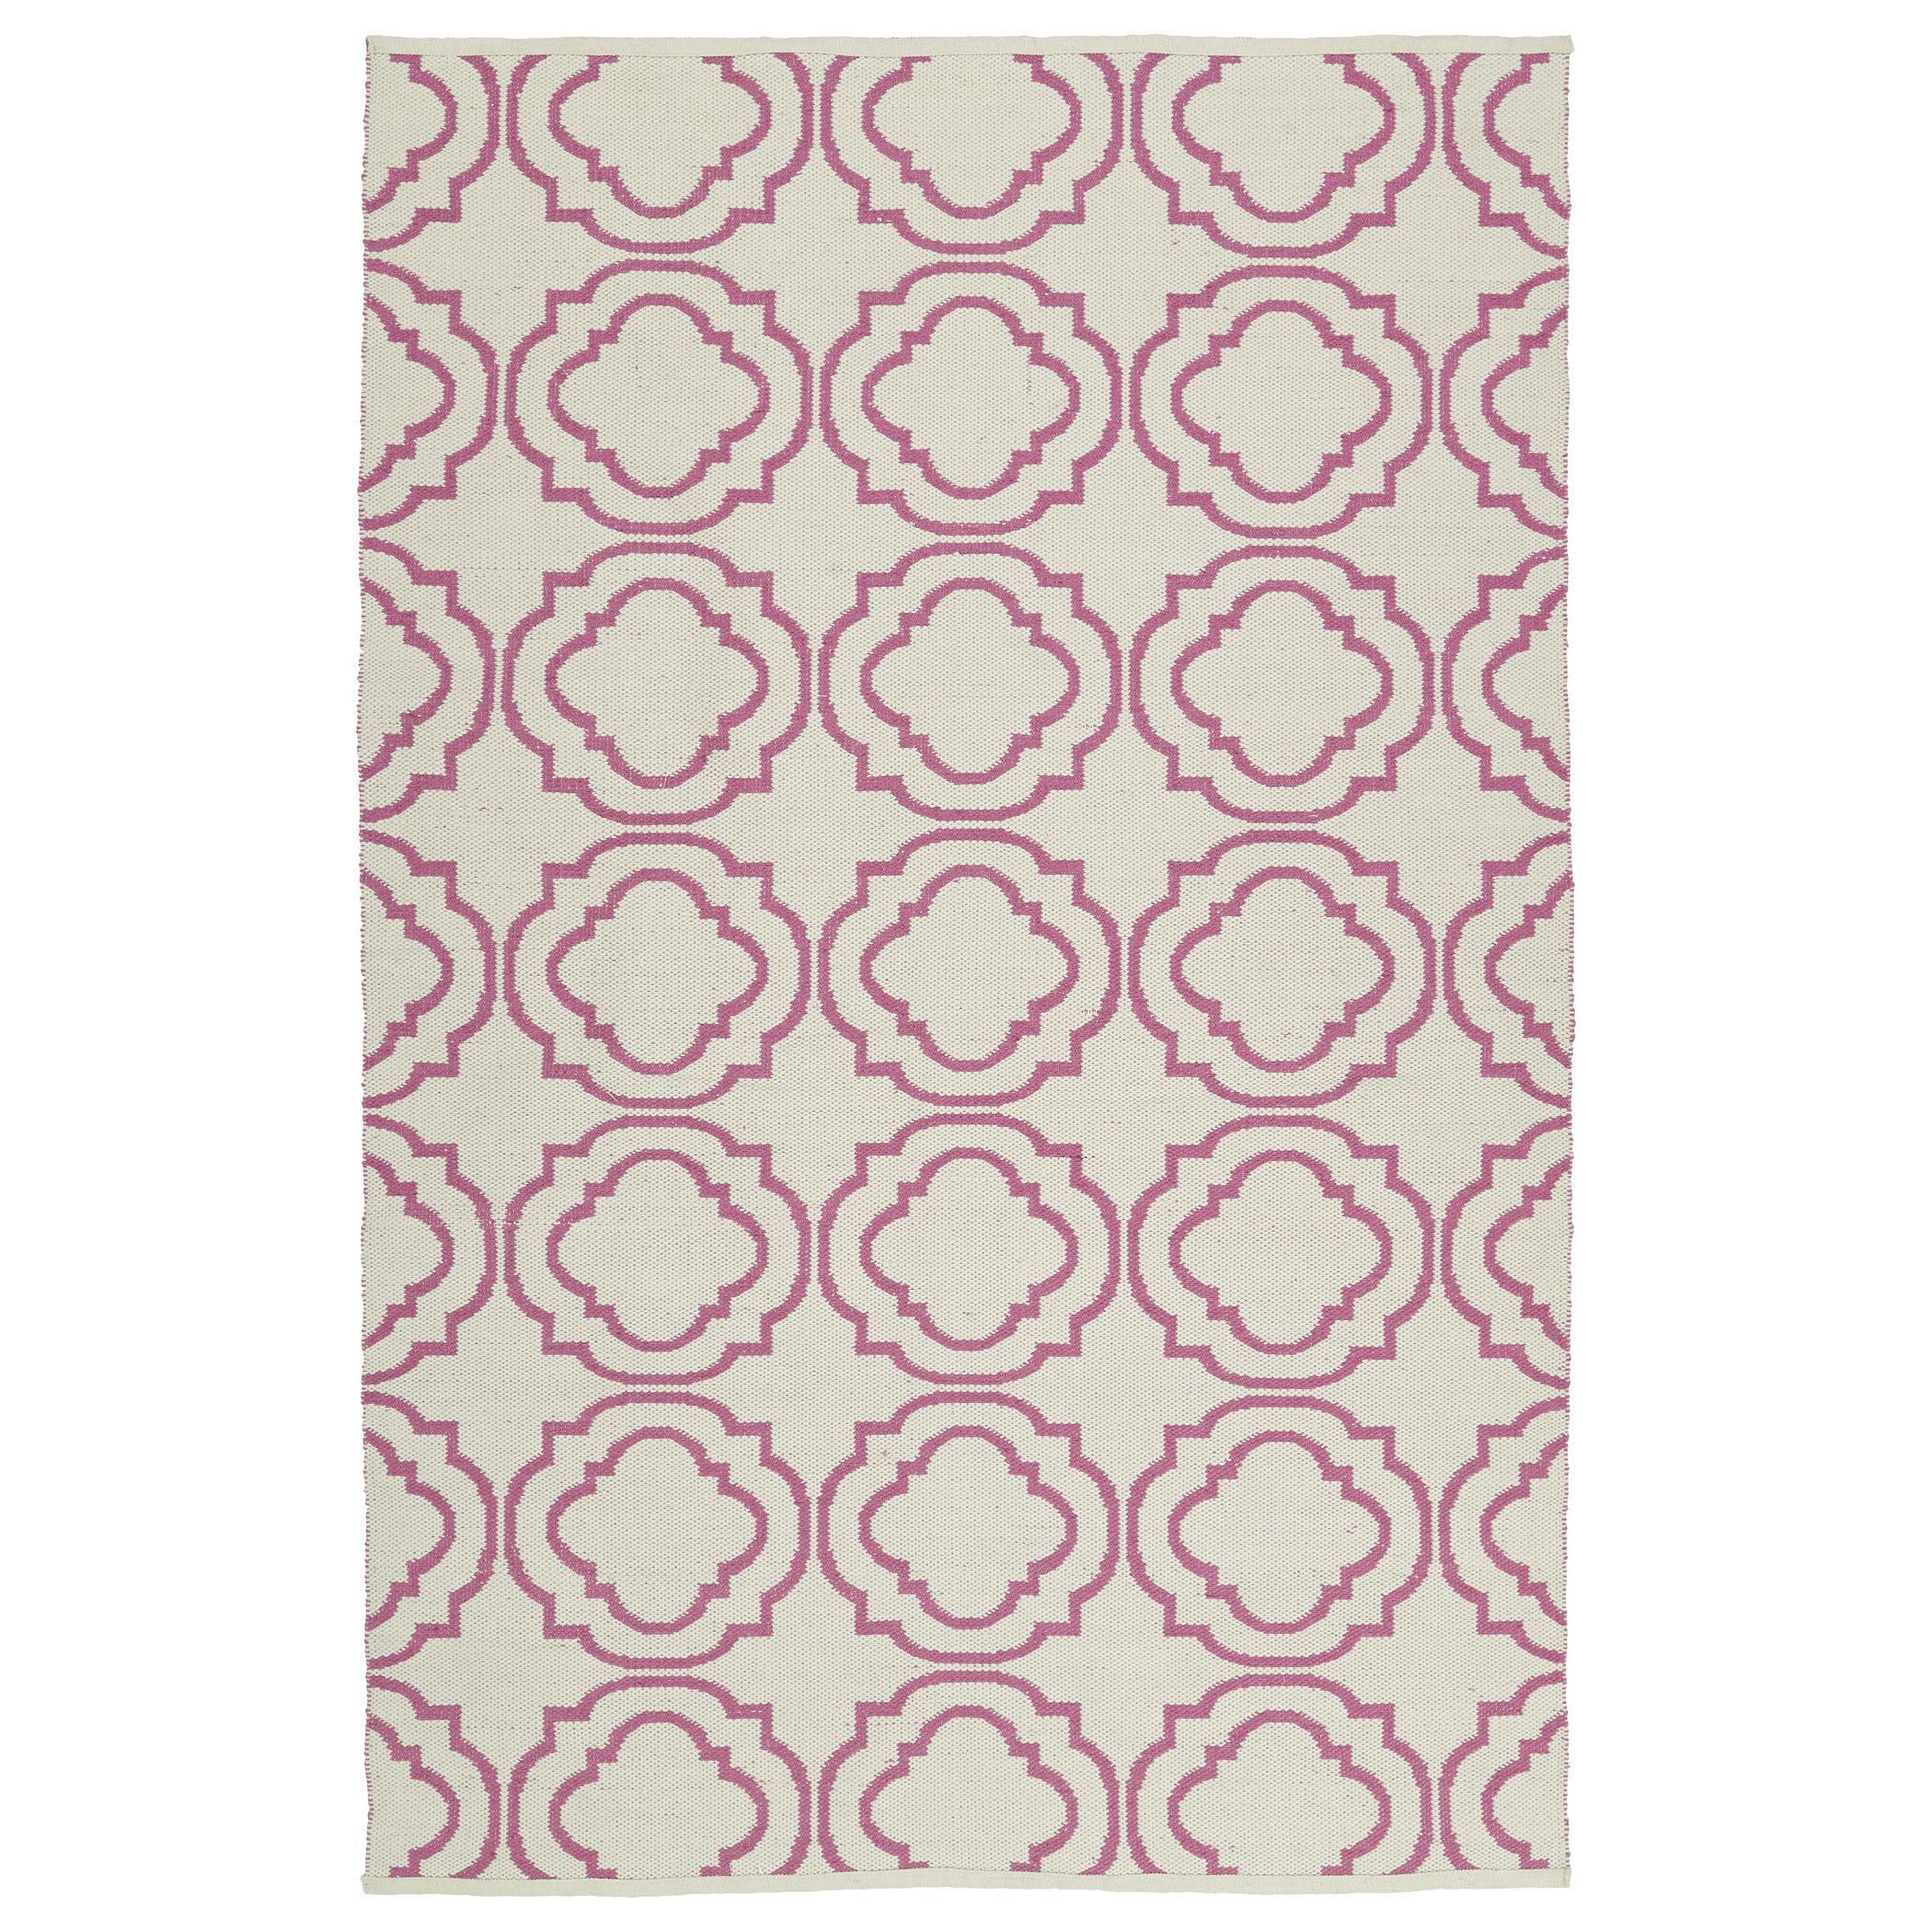 Kaleen Rugs Indoor/Outdoor Laguna Ivory and Pink Geo Flat-Weave Rug (9'0 x 12'0) (9'0 x 12'0), Size 9' x 12' (Polyester, Geometric)